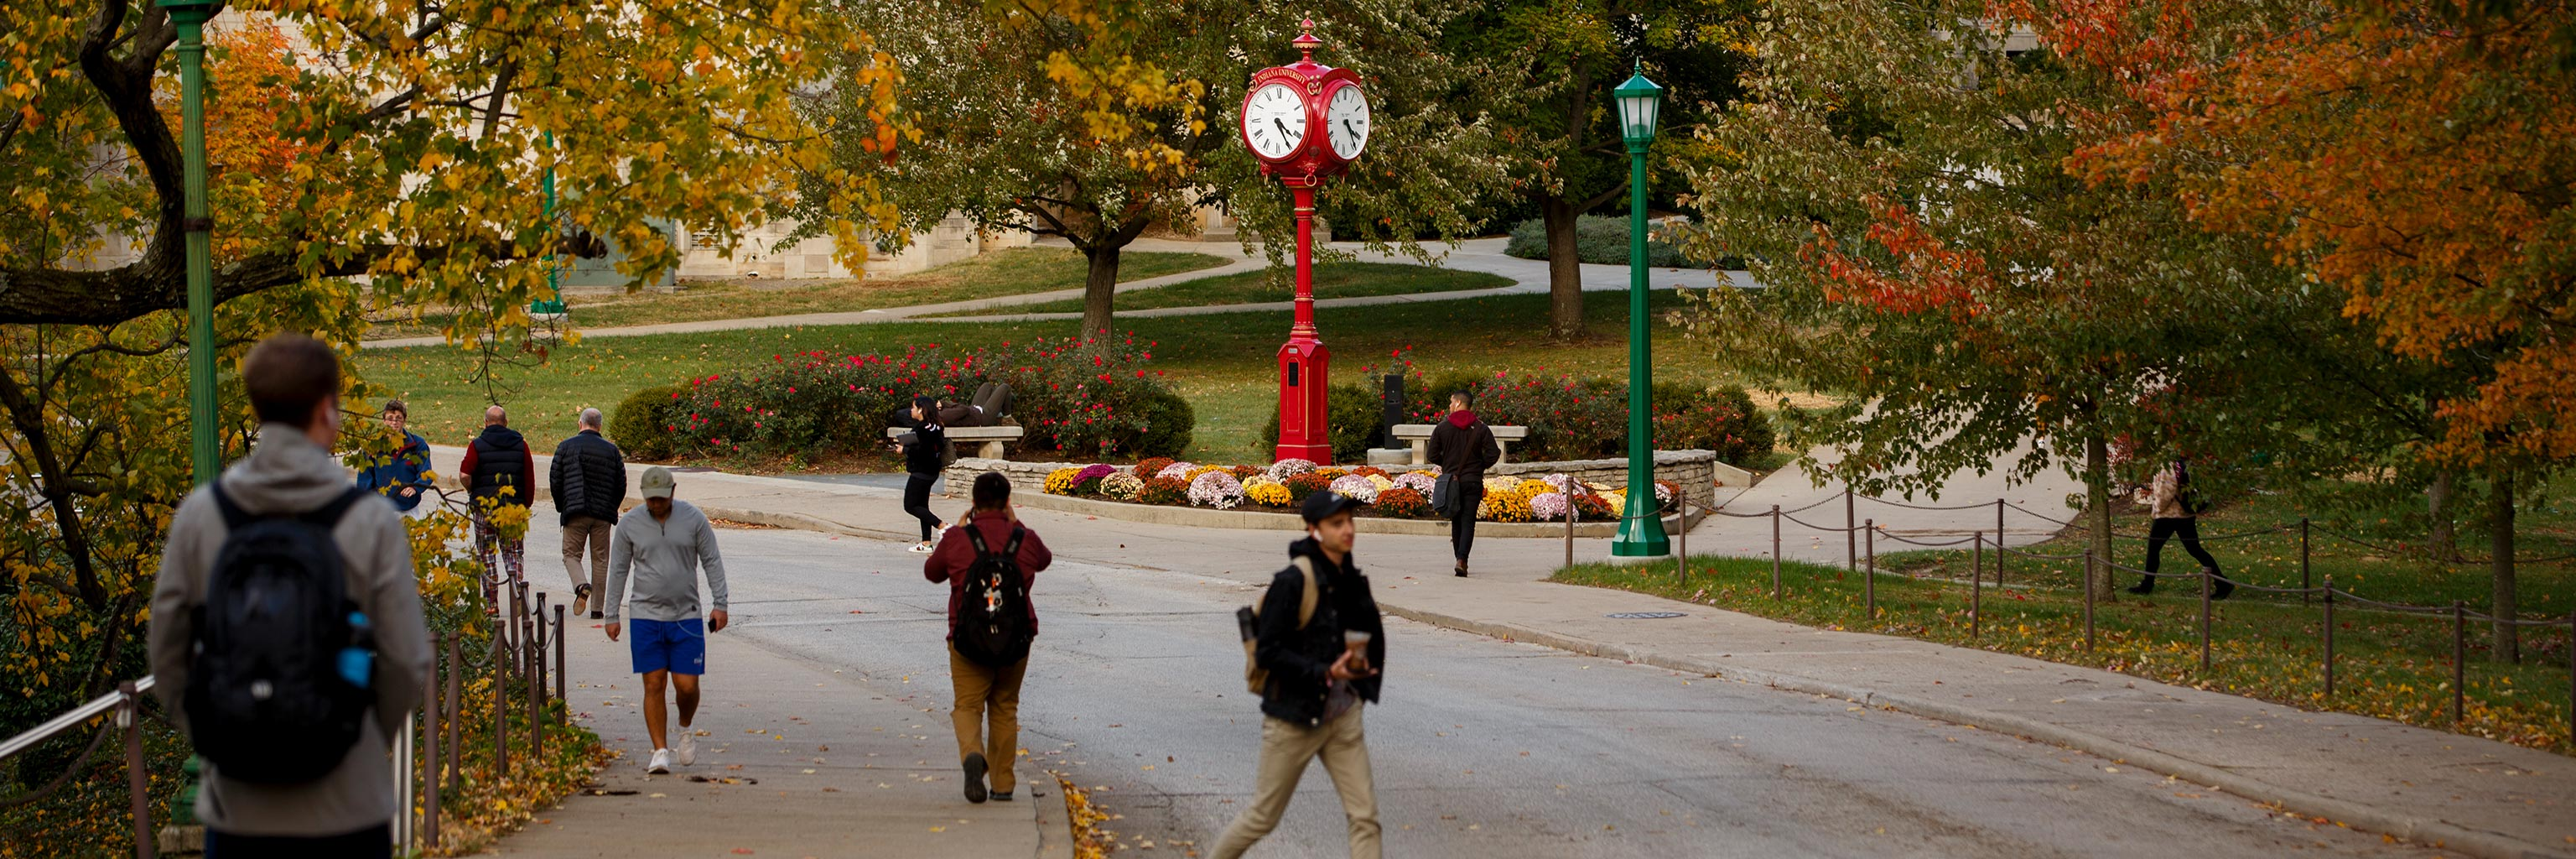 students walking down the autumn weather and side walks on campus